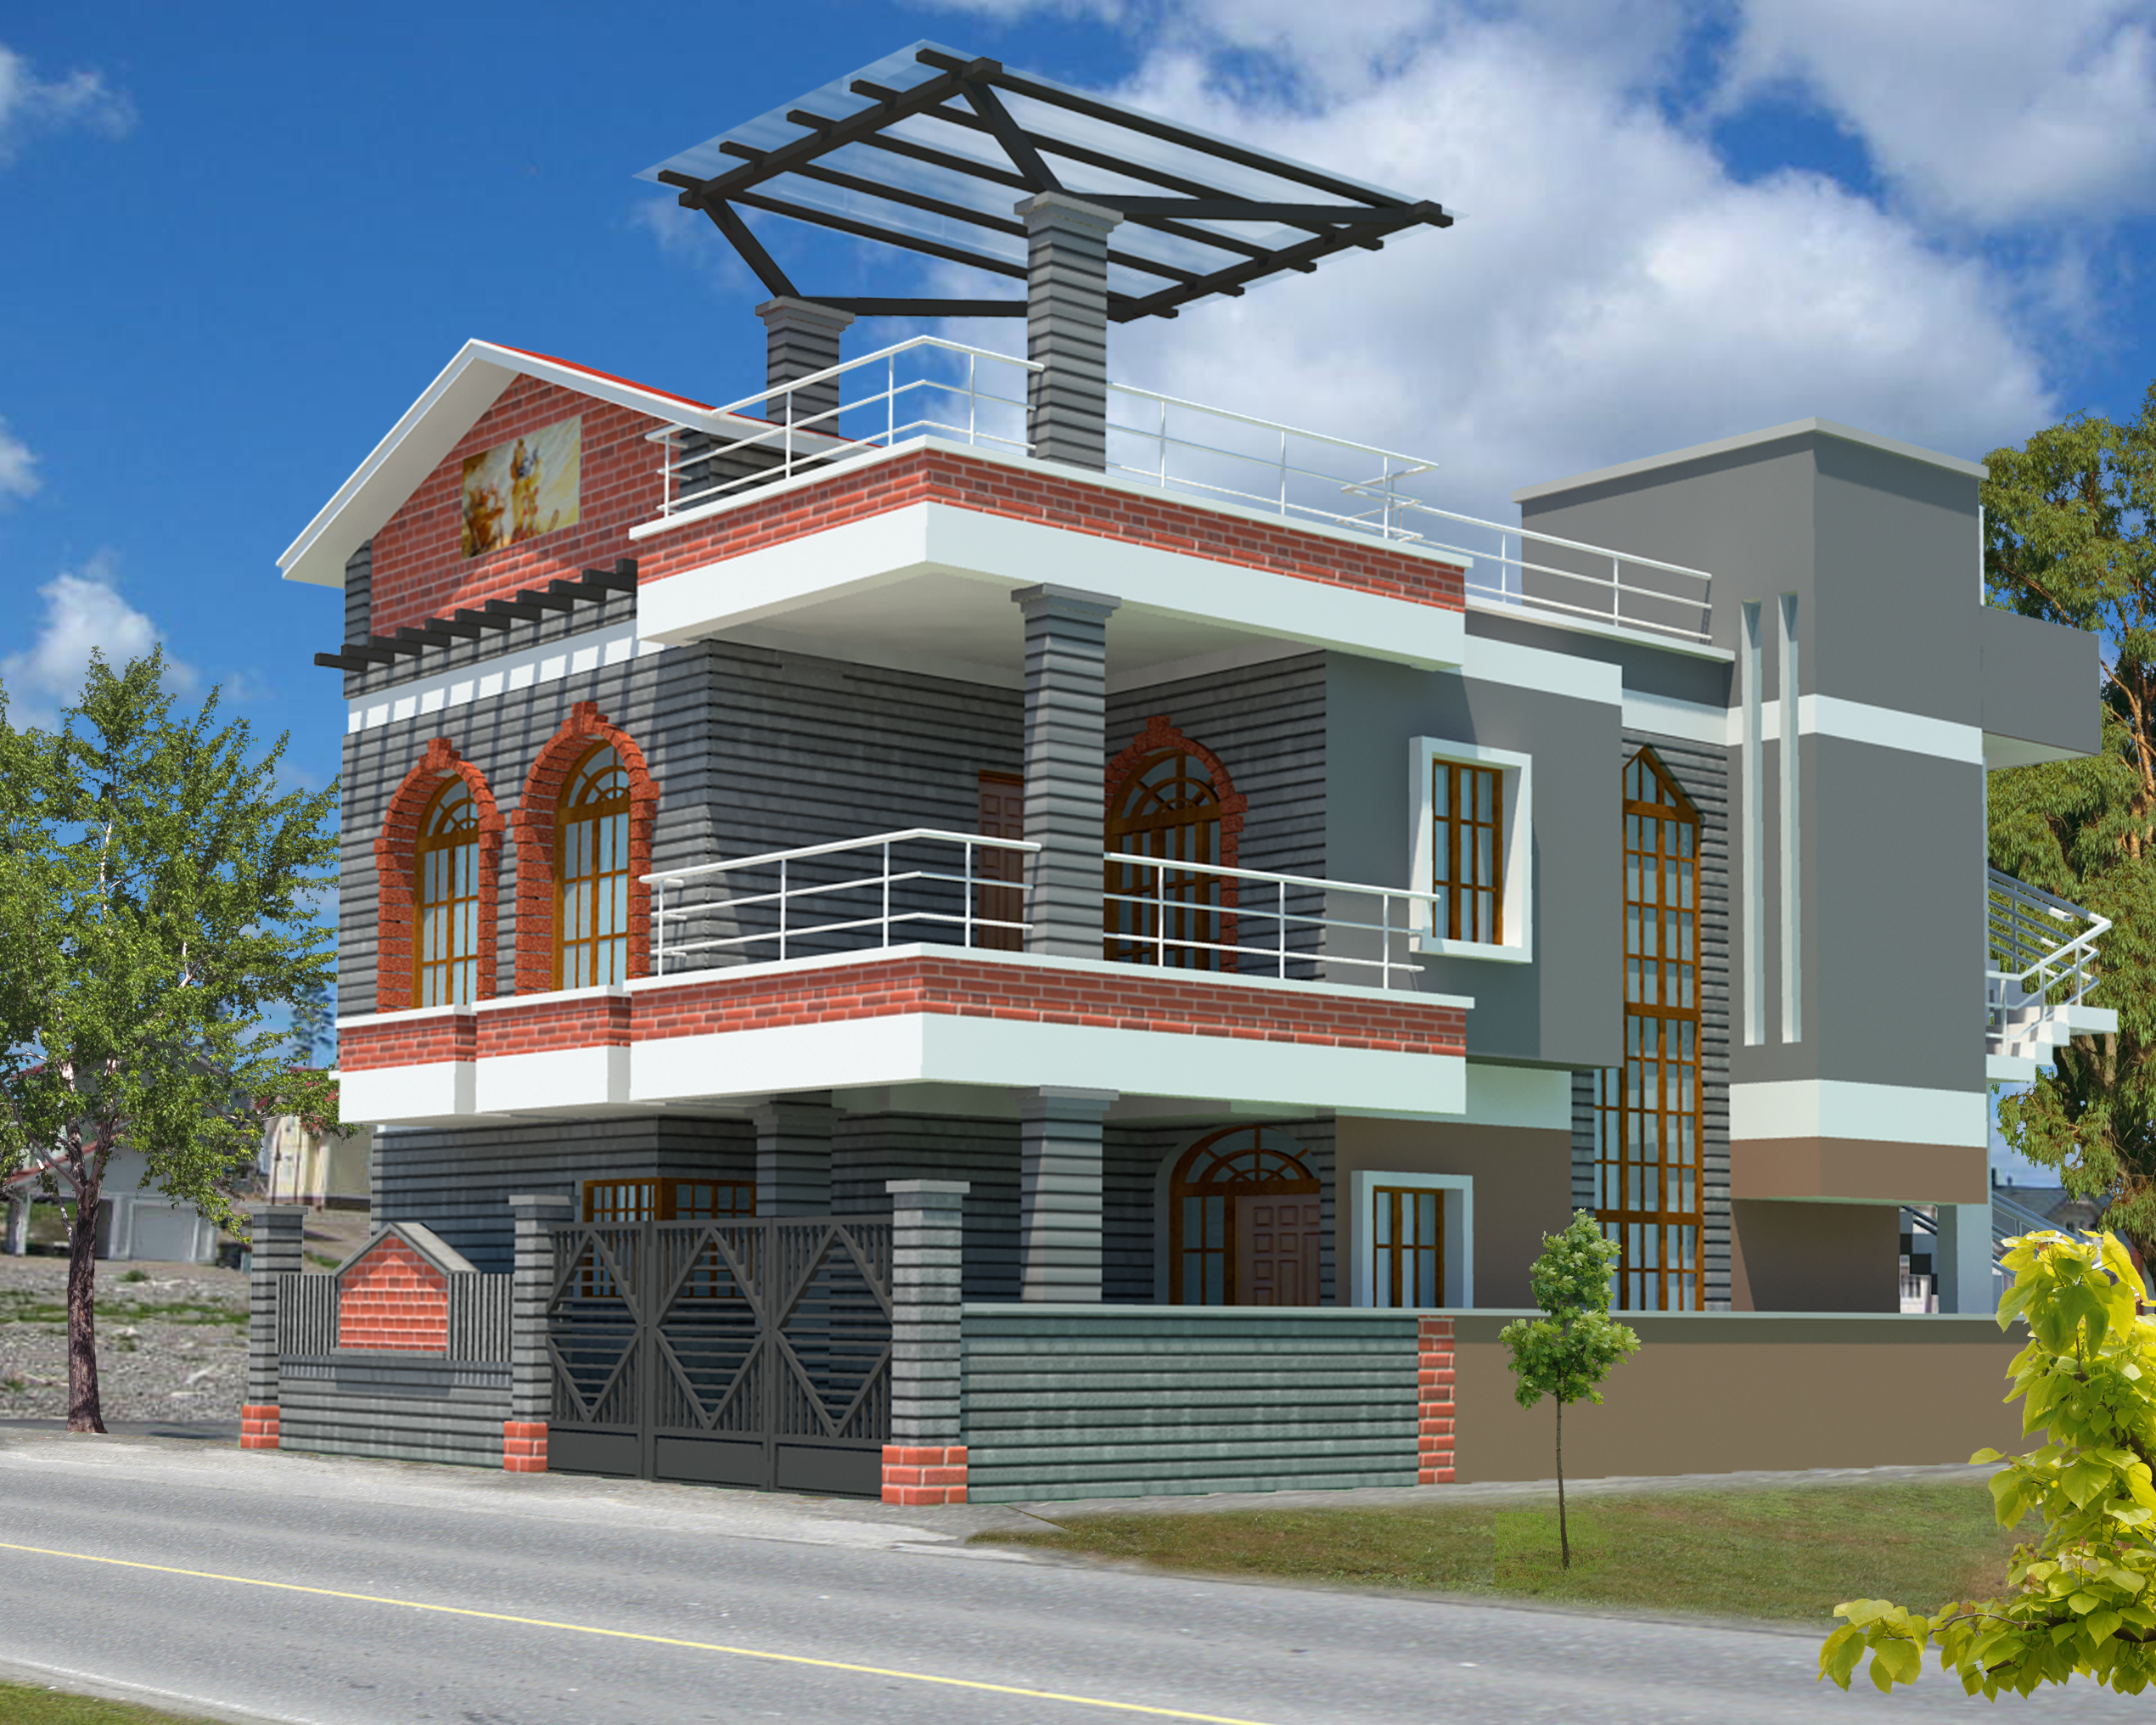 Interior Exterior Plan Make Use Of Websites To Build A 3d Model Of Your House Exterior